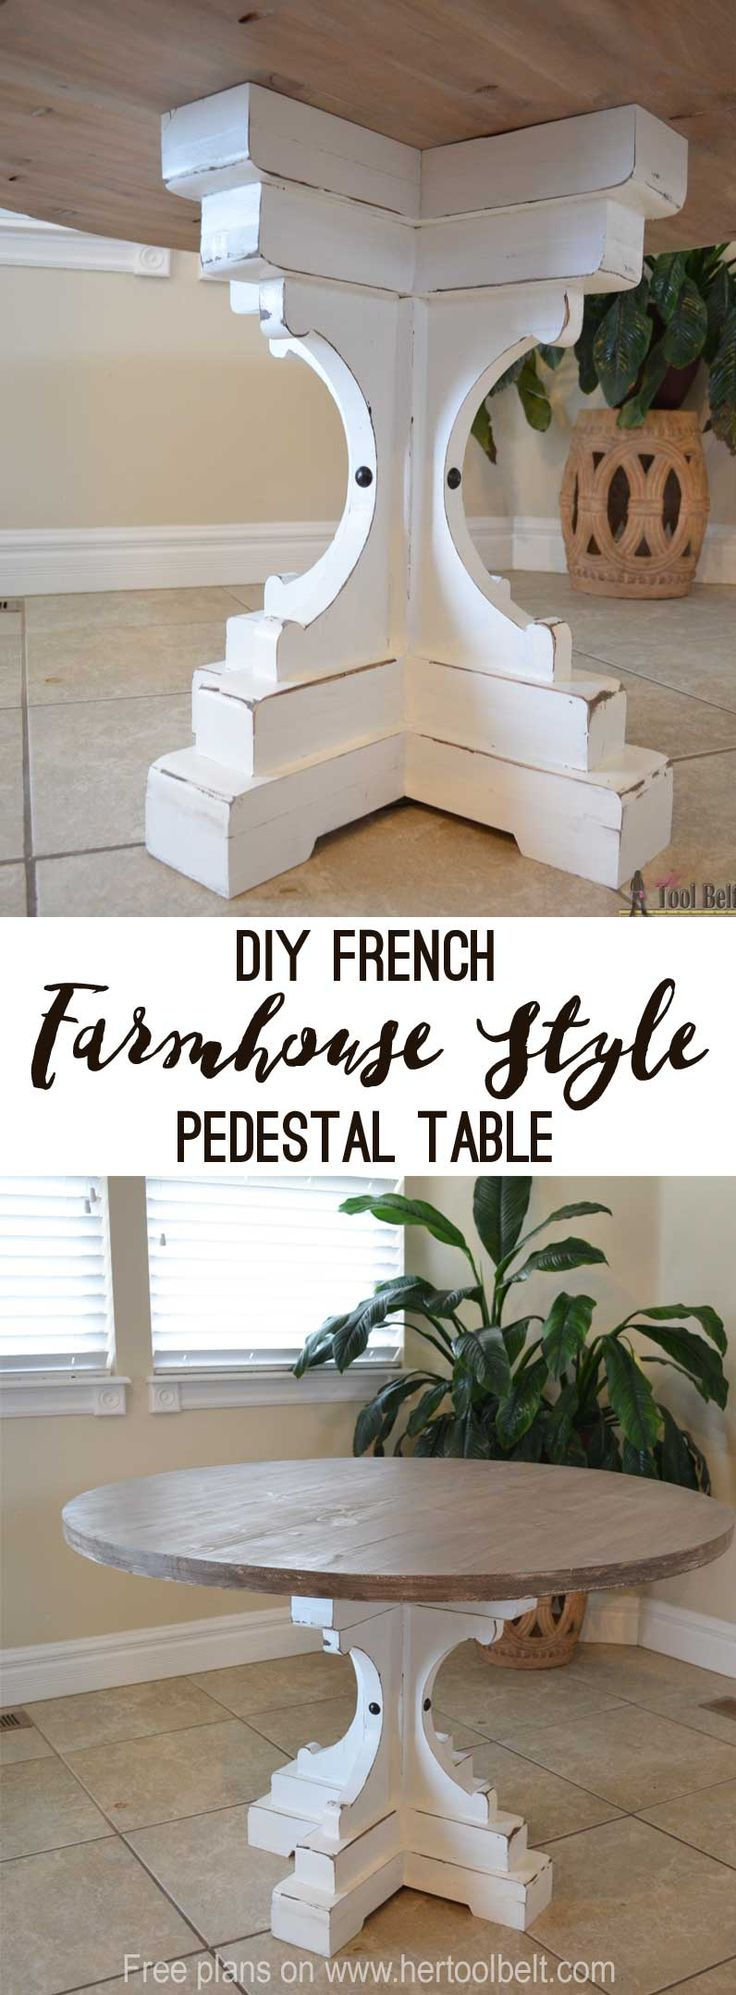 "Free woodworking plans to build a chunky french farmhouse style 48"" round pedestal table. This table is made from simple lumber (2x8, 2x6, 2x4) from Home Depot. Love the reclaimed wood finish!"